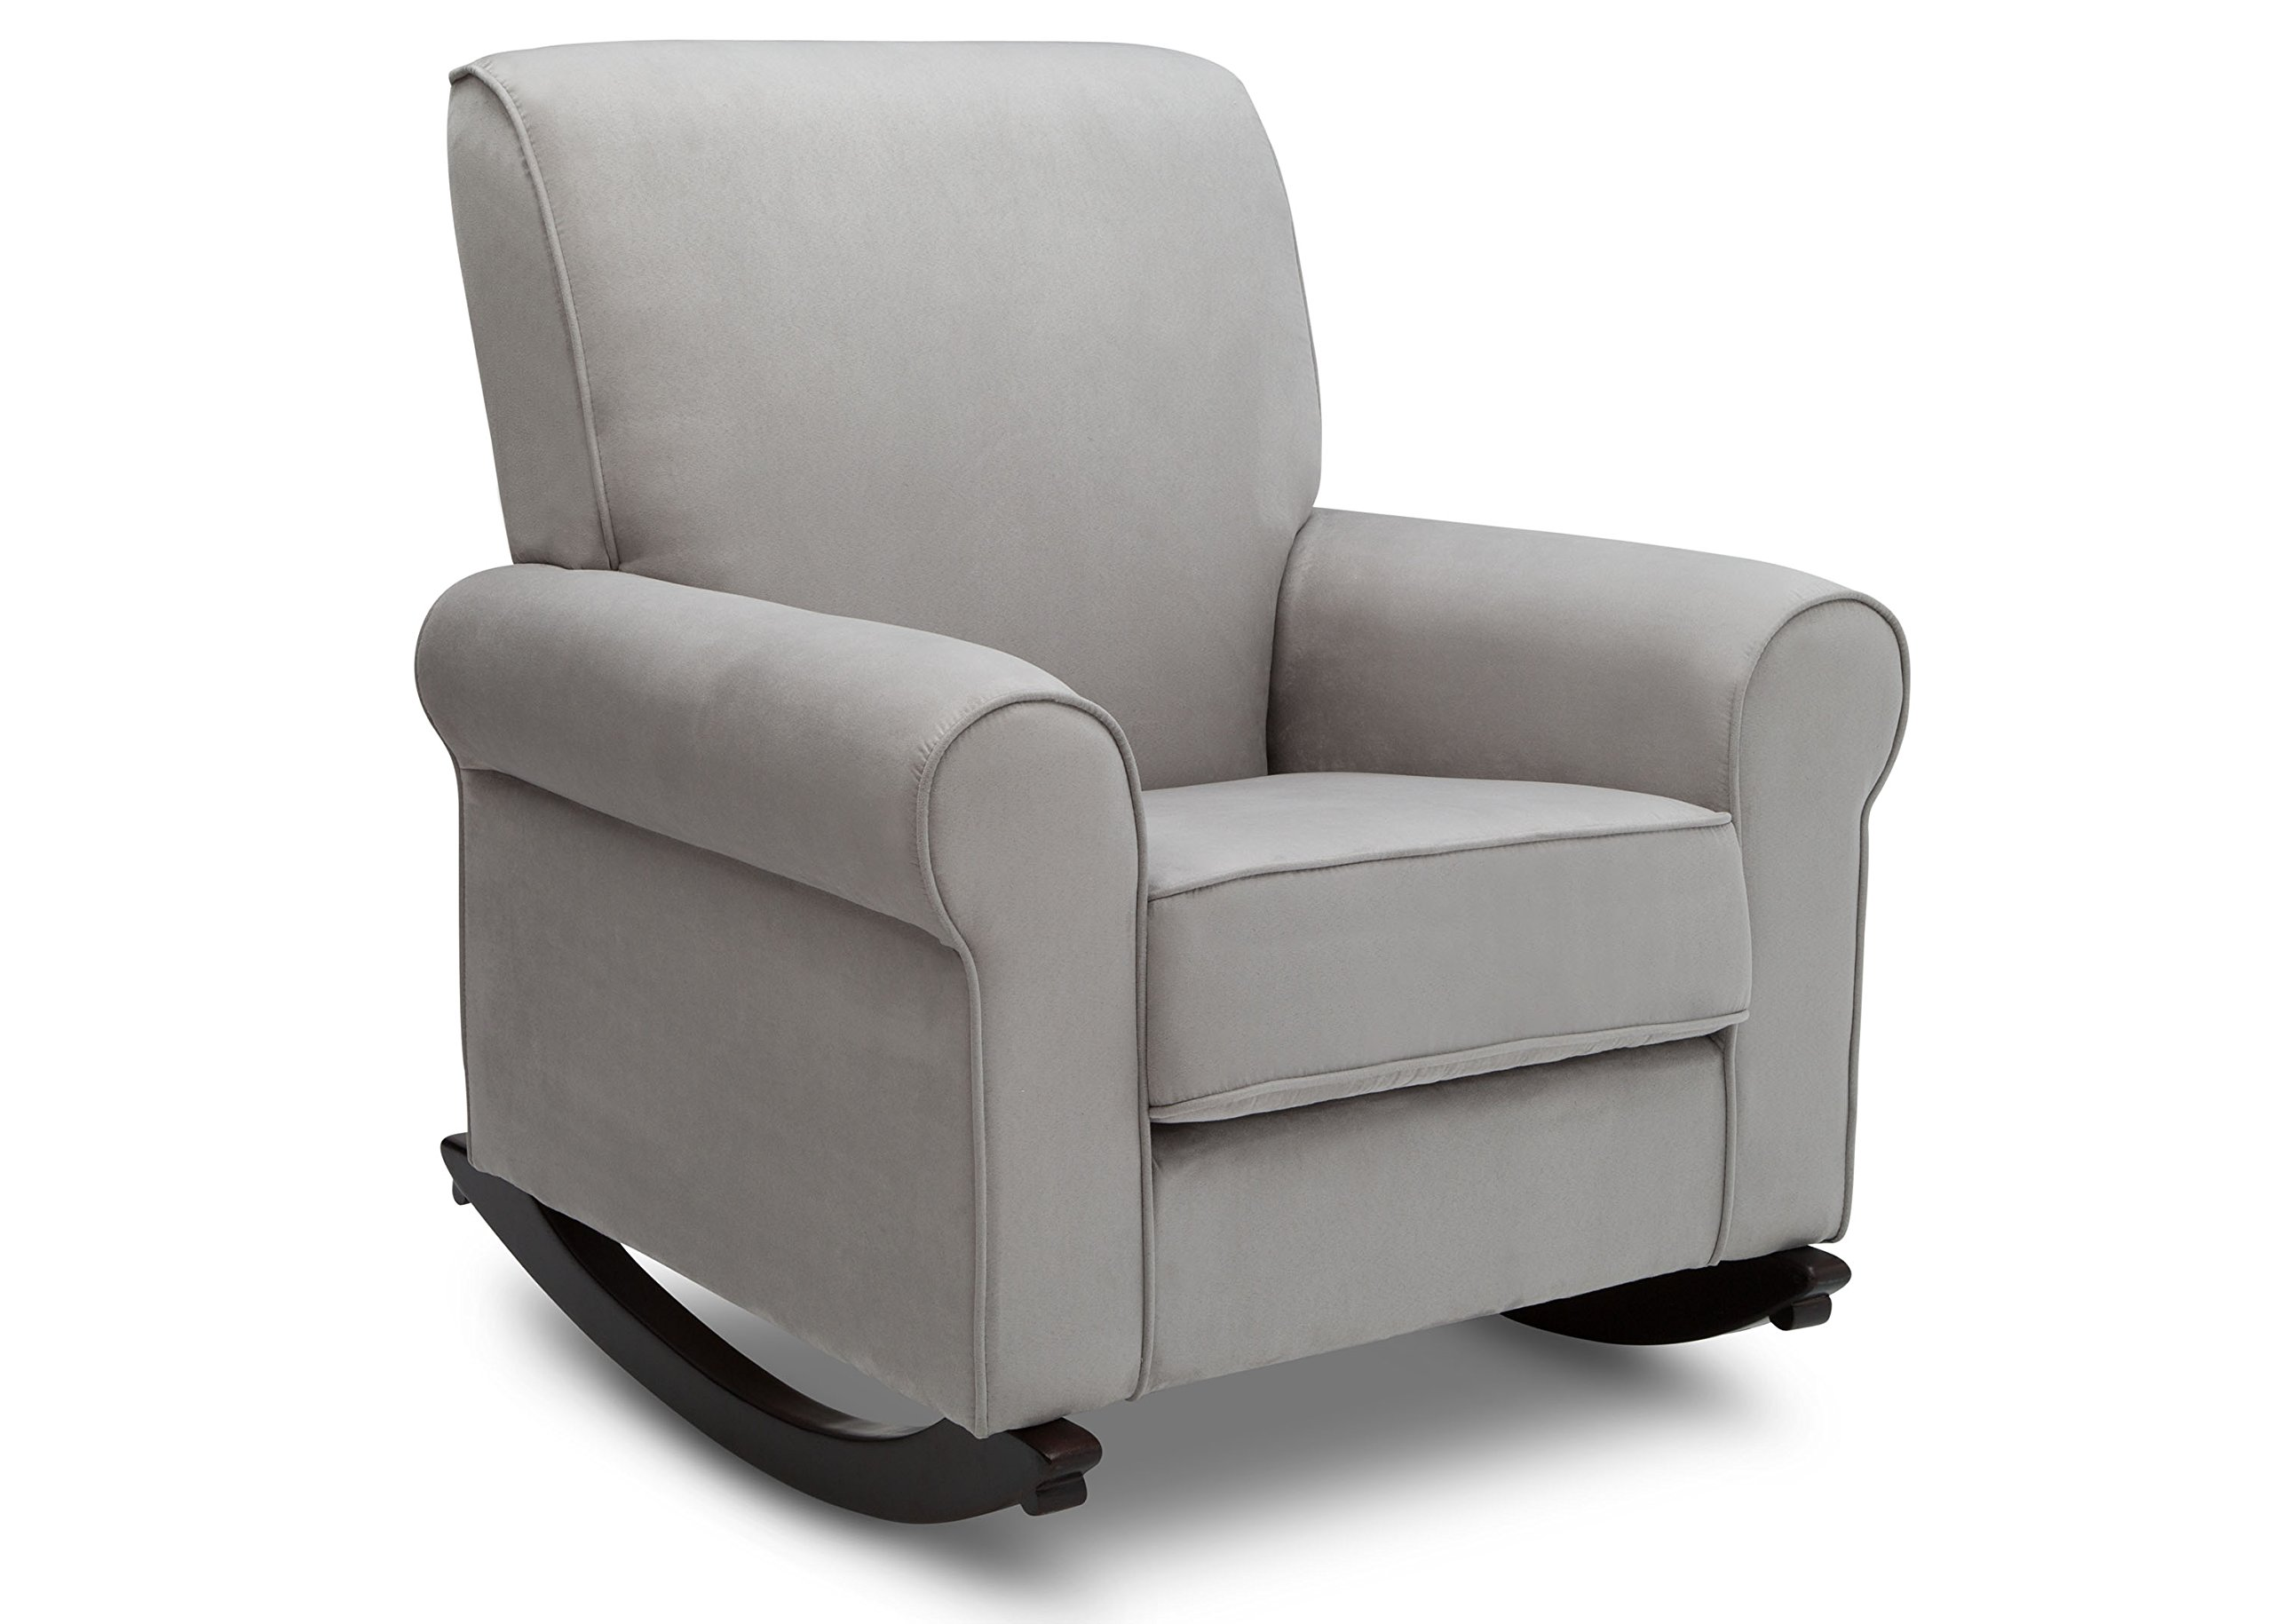 Delta Furniture Rowen Upholstered Rocking Chair, Dove Grey